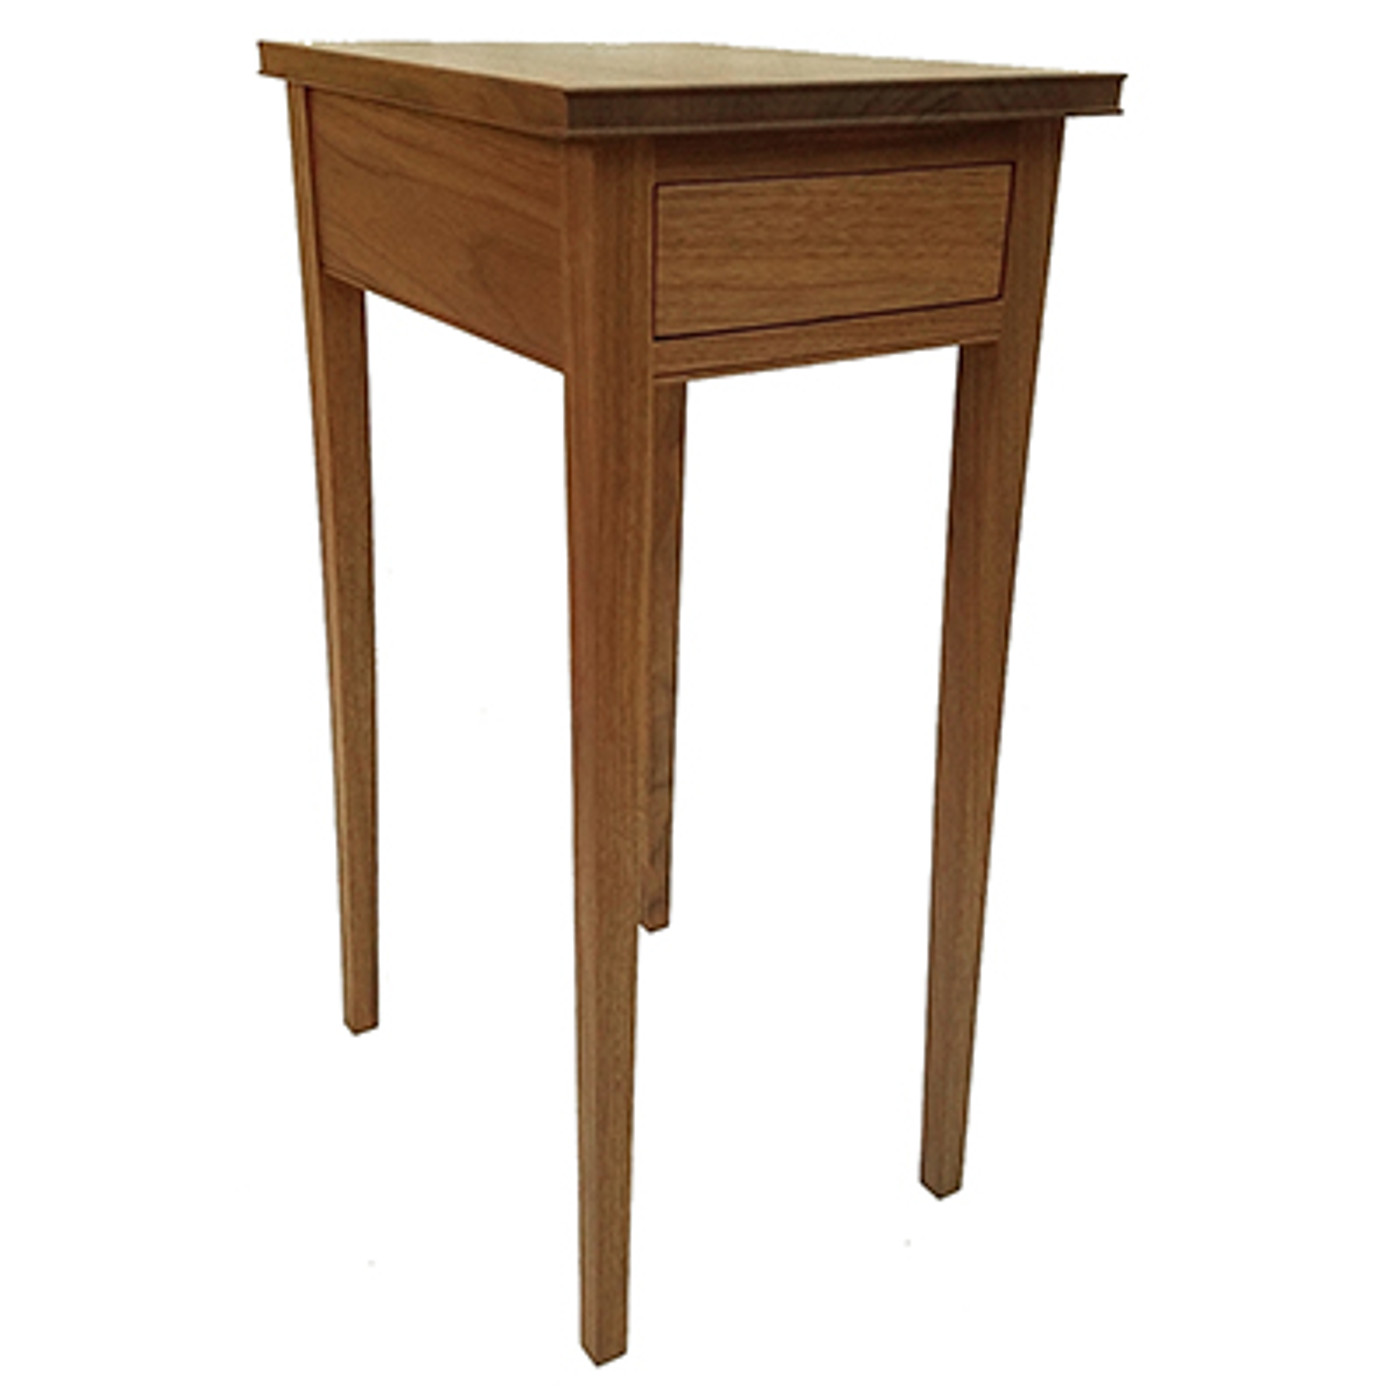 American Hepplewhite Table with drawer